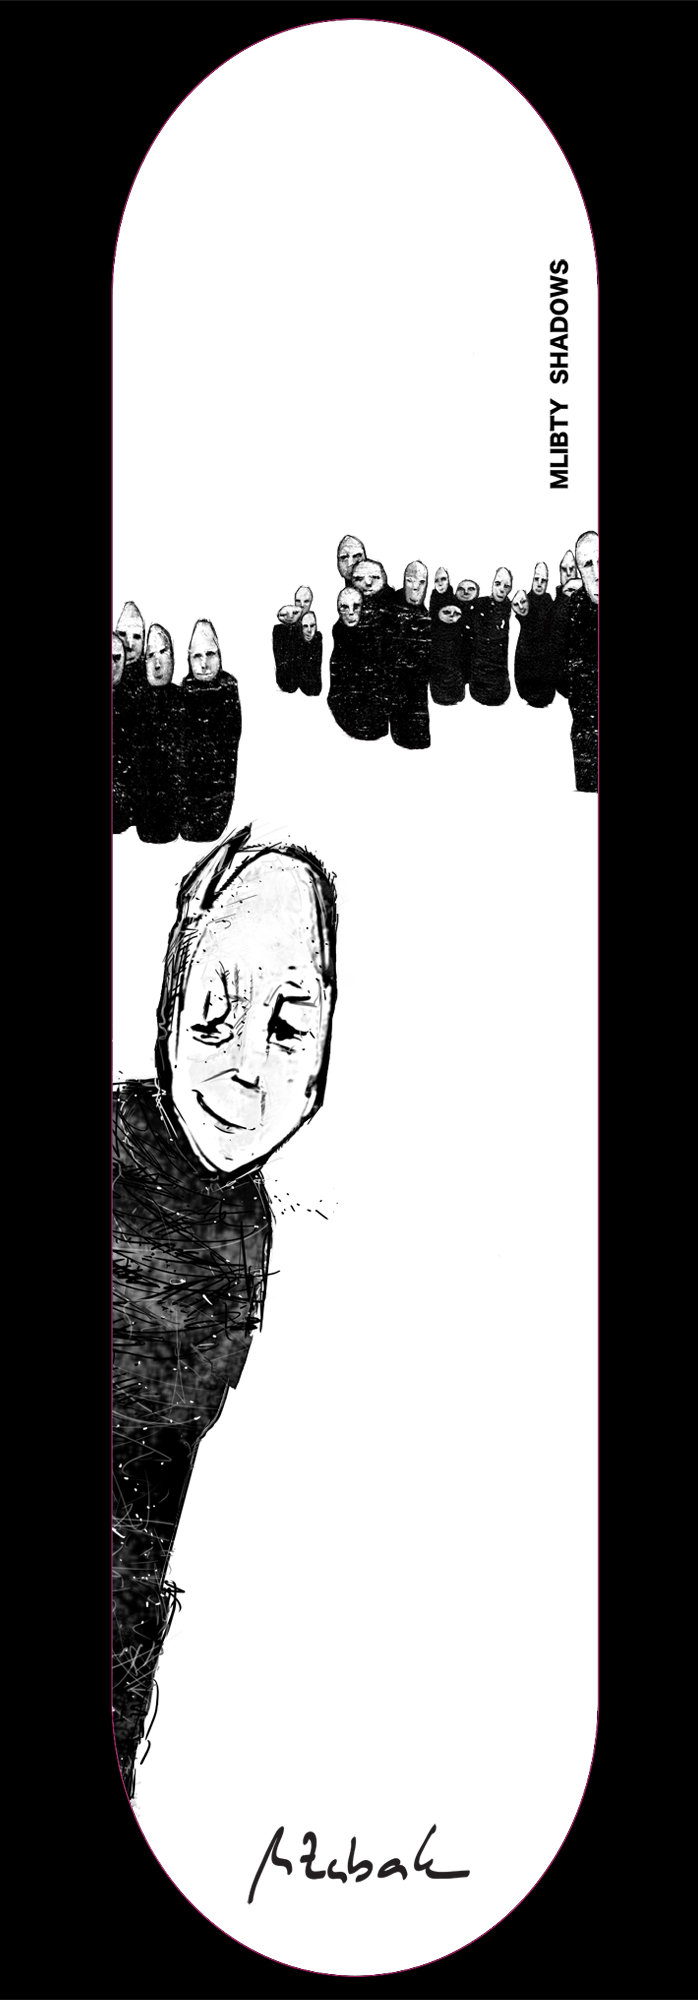 Pretty limited edition skate deck:  MLIBTY SHADOWS, 2016, (edition 12/12)